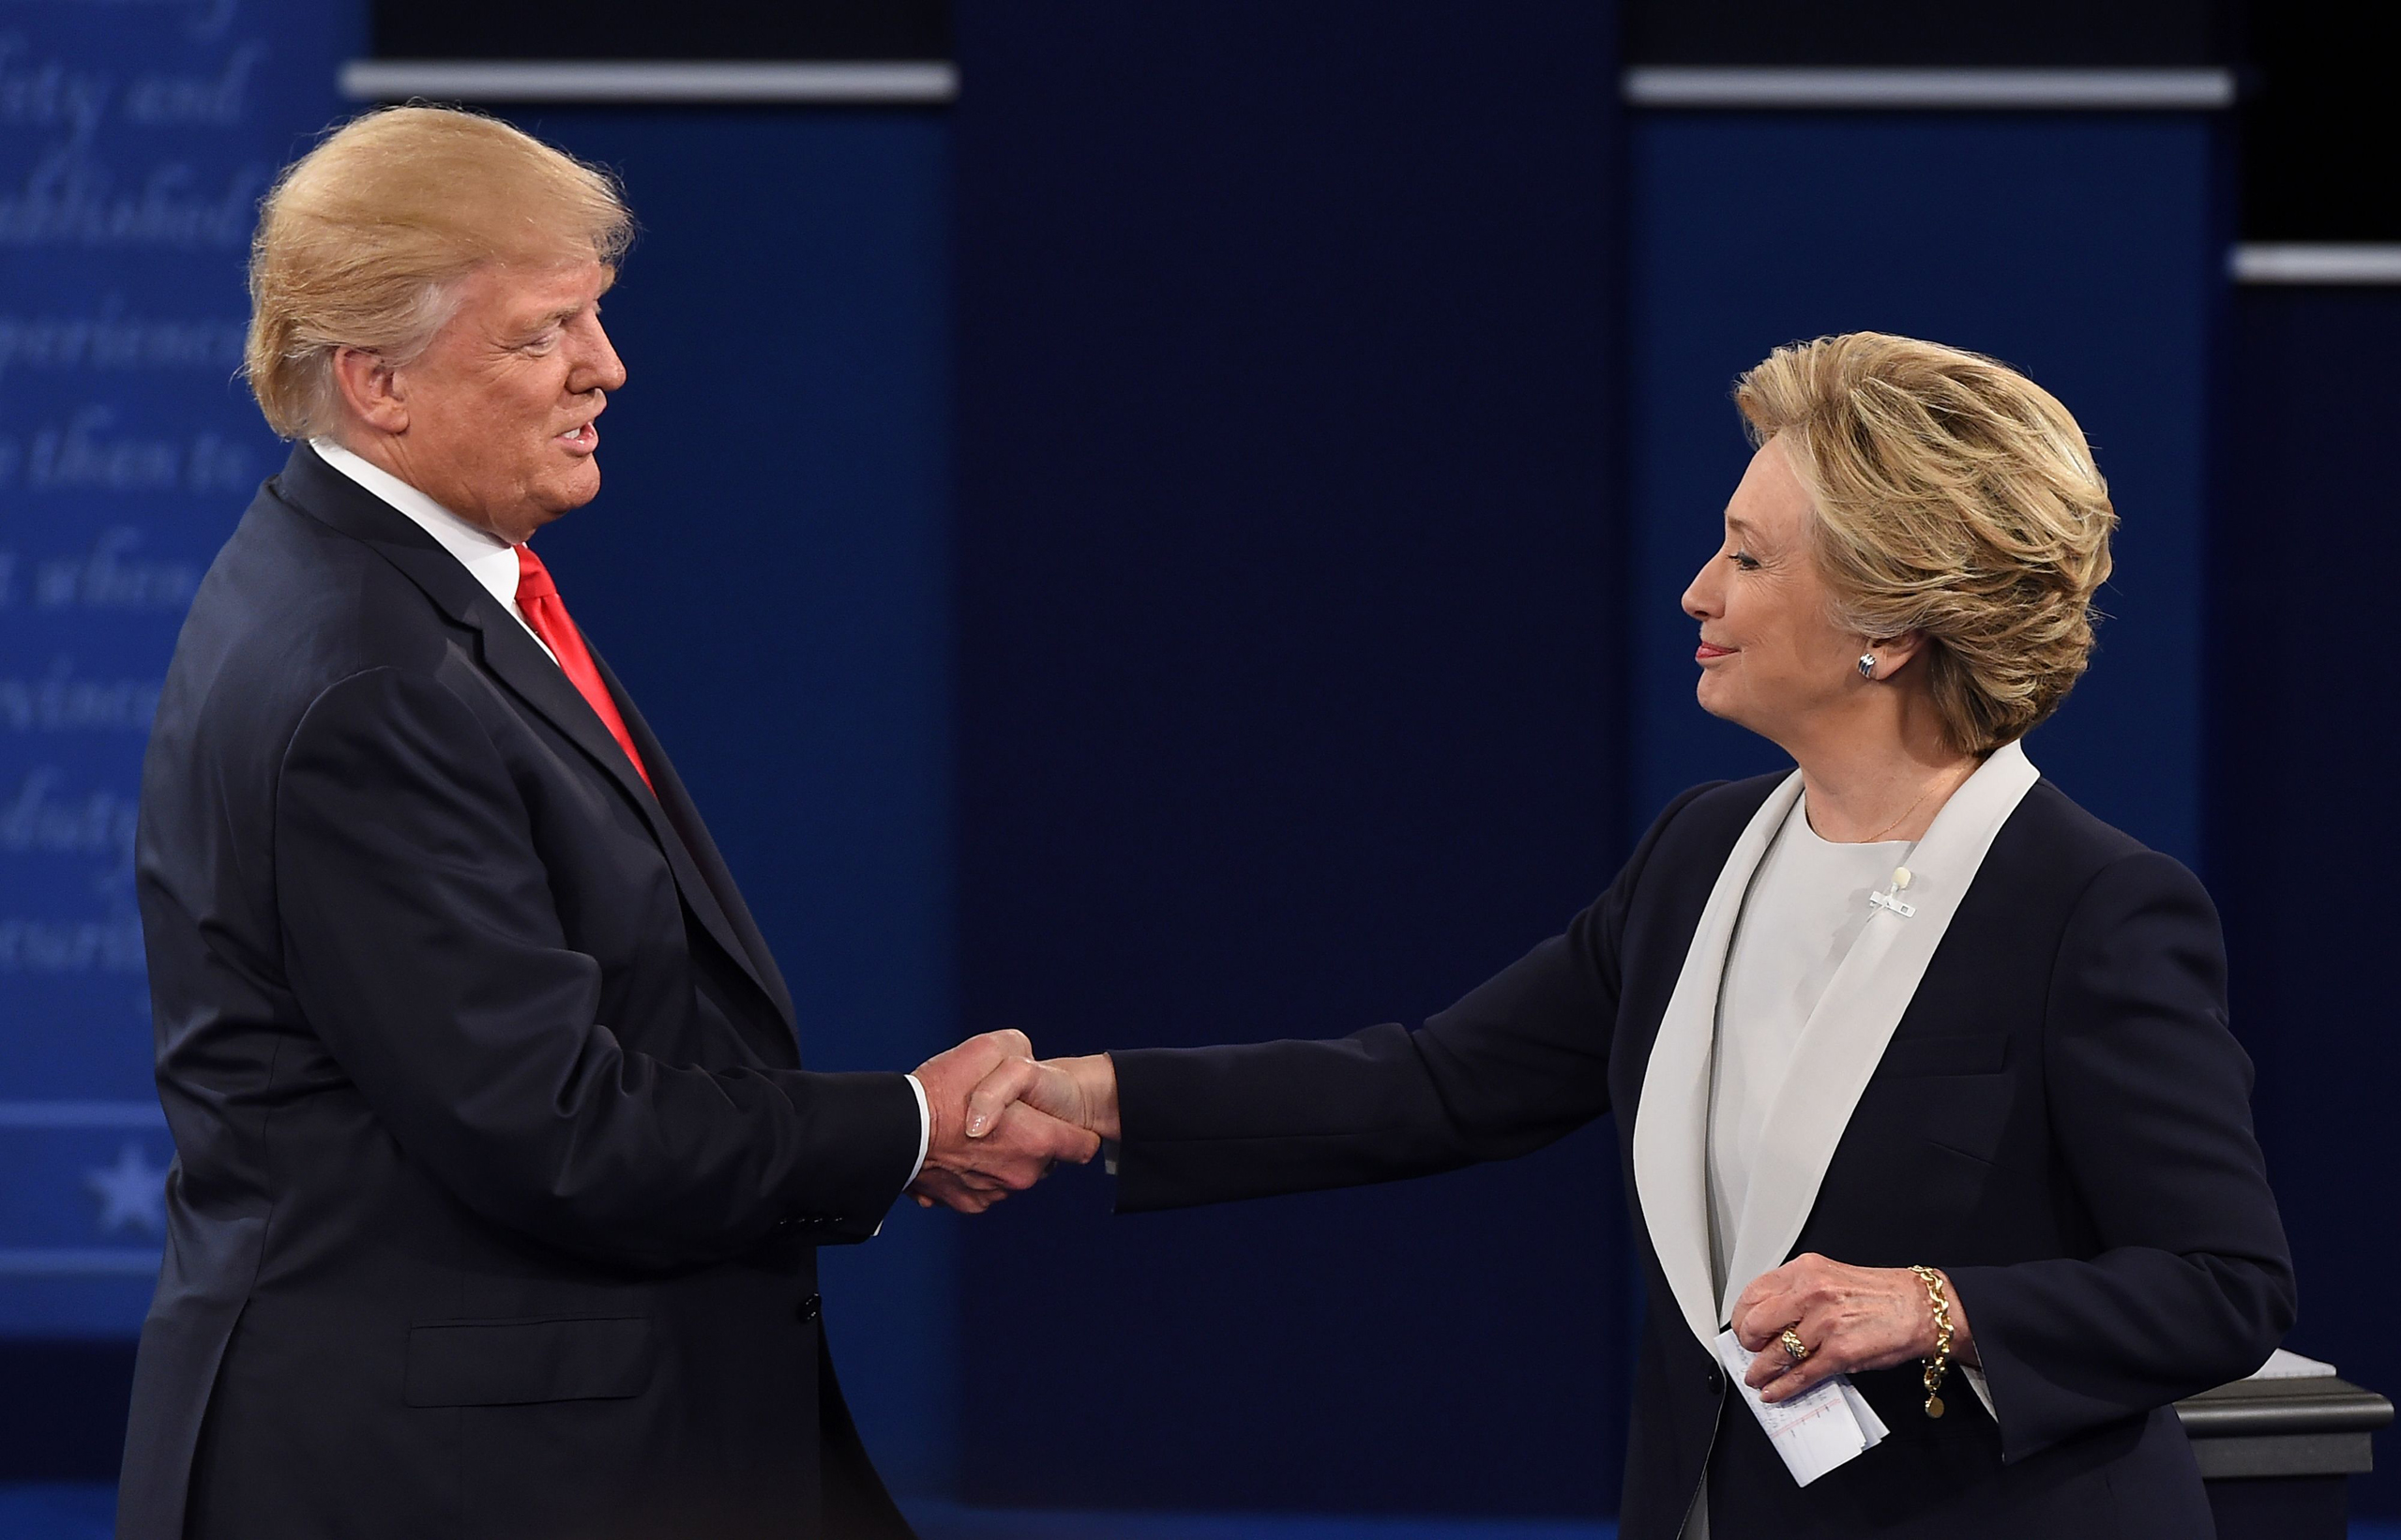 Hillary Clinton and Donald Trump shake hands after the second presidential debate at Washington University in St. Louis, Missouri, on Oct. 9, 2016.